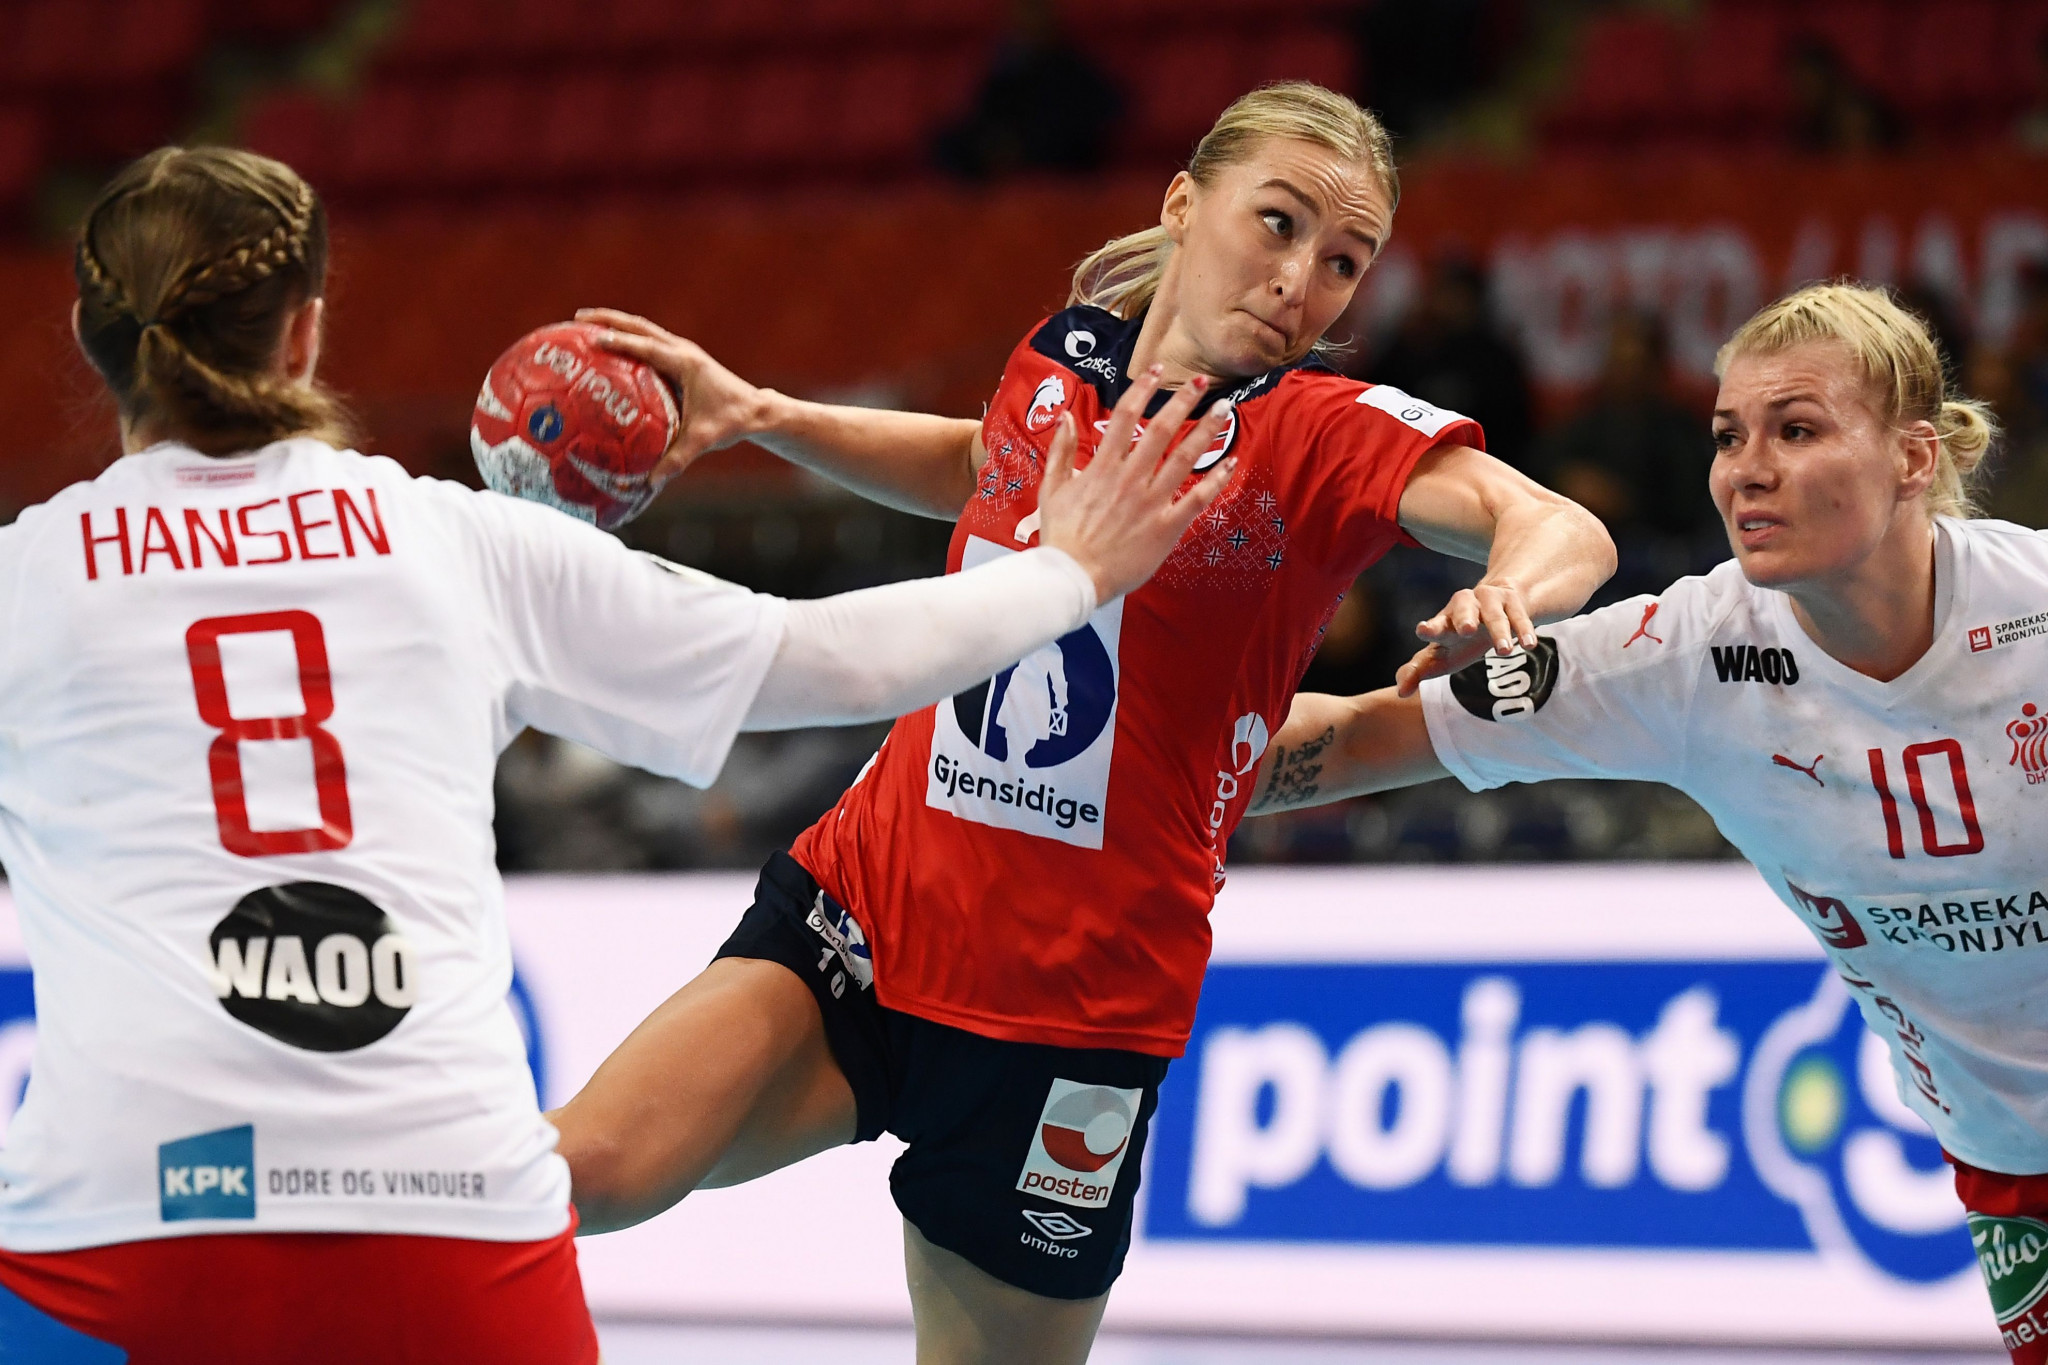 European Women's Handball Championship to begin with strict COVID-19 protocol in place